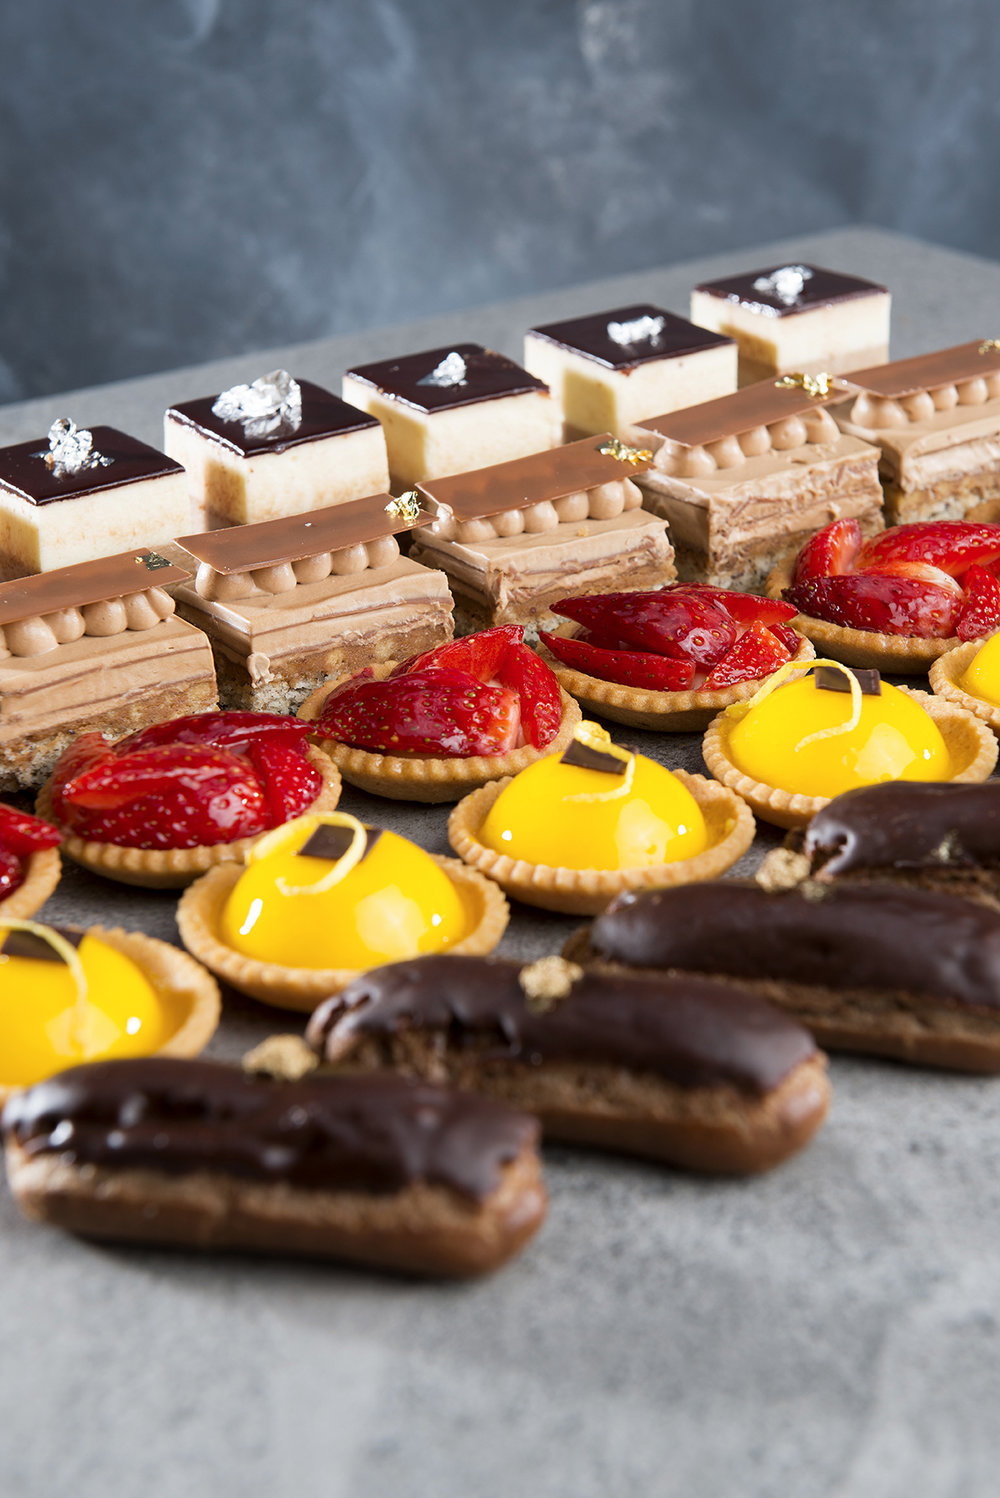 10. Selection of Petit Fours